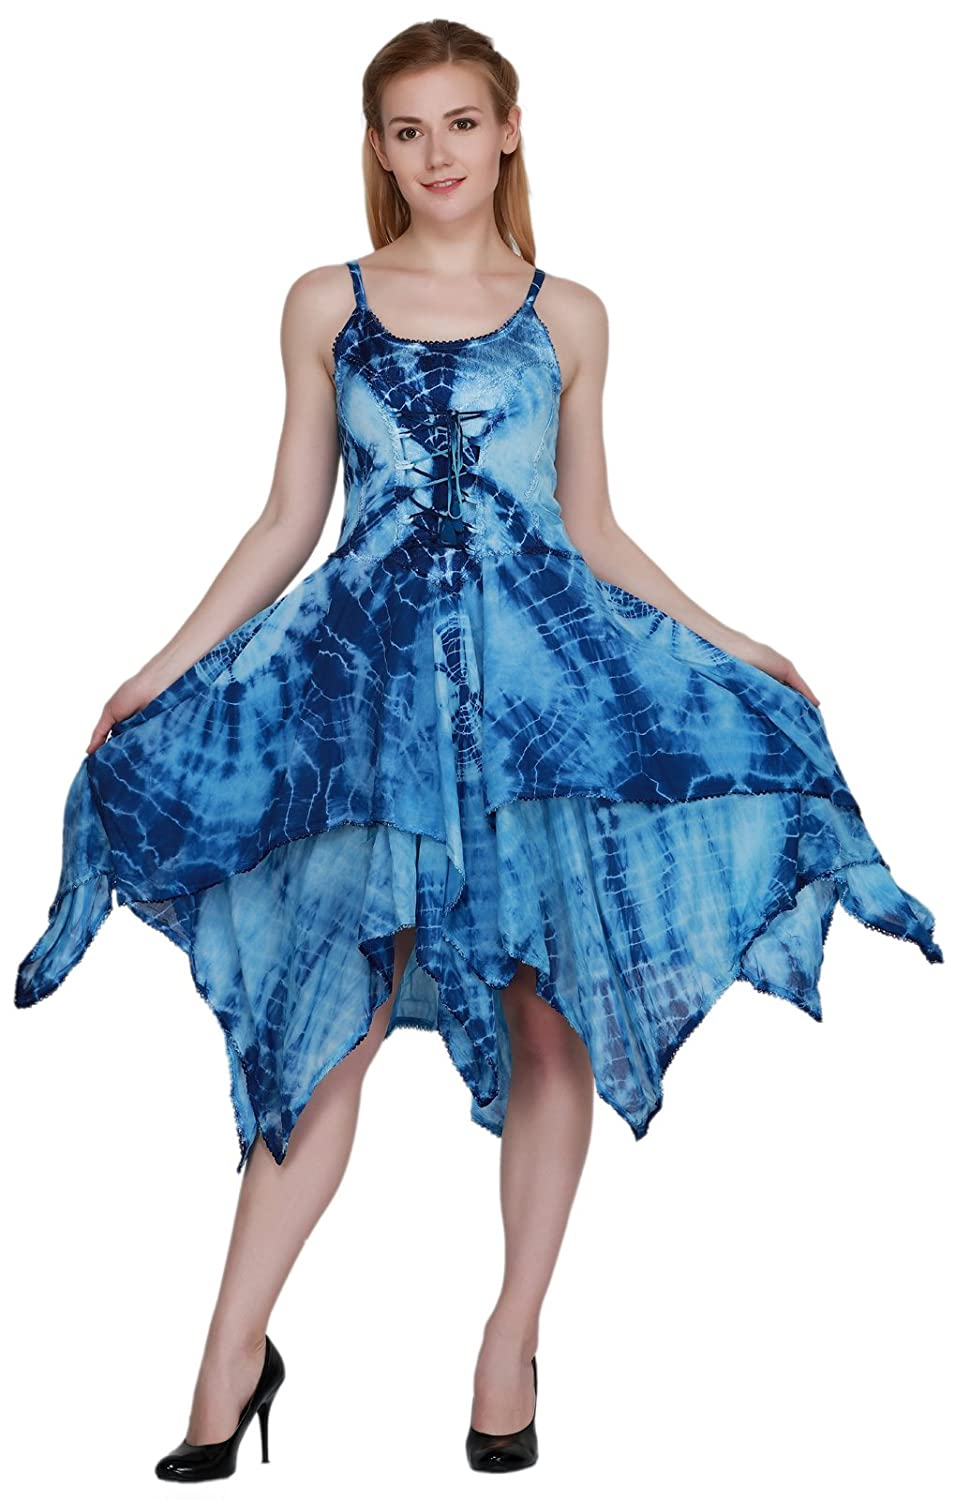 d1beac63b4453d Fabric: Viscose Measurement (Appx): Bust: 30 to 42 Inches; Height: 44  Inches Care: Hand Wash in Cold Water Sleeveless Design with Tie Dye Style  on whole ...